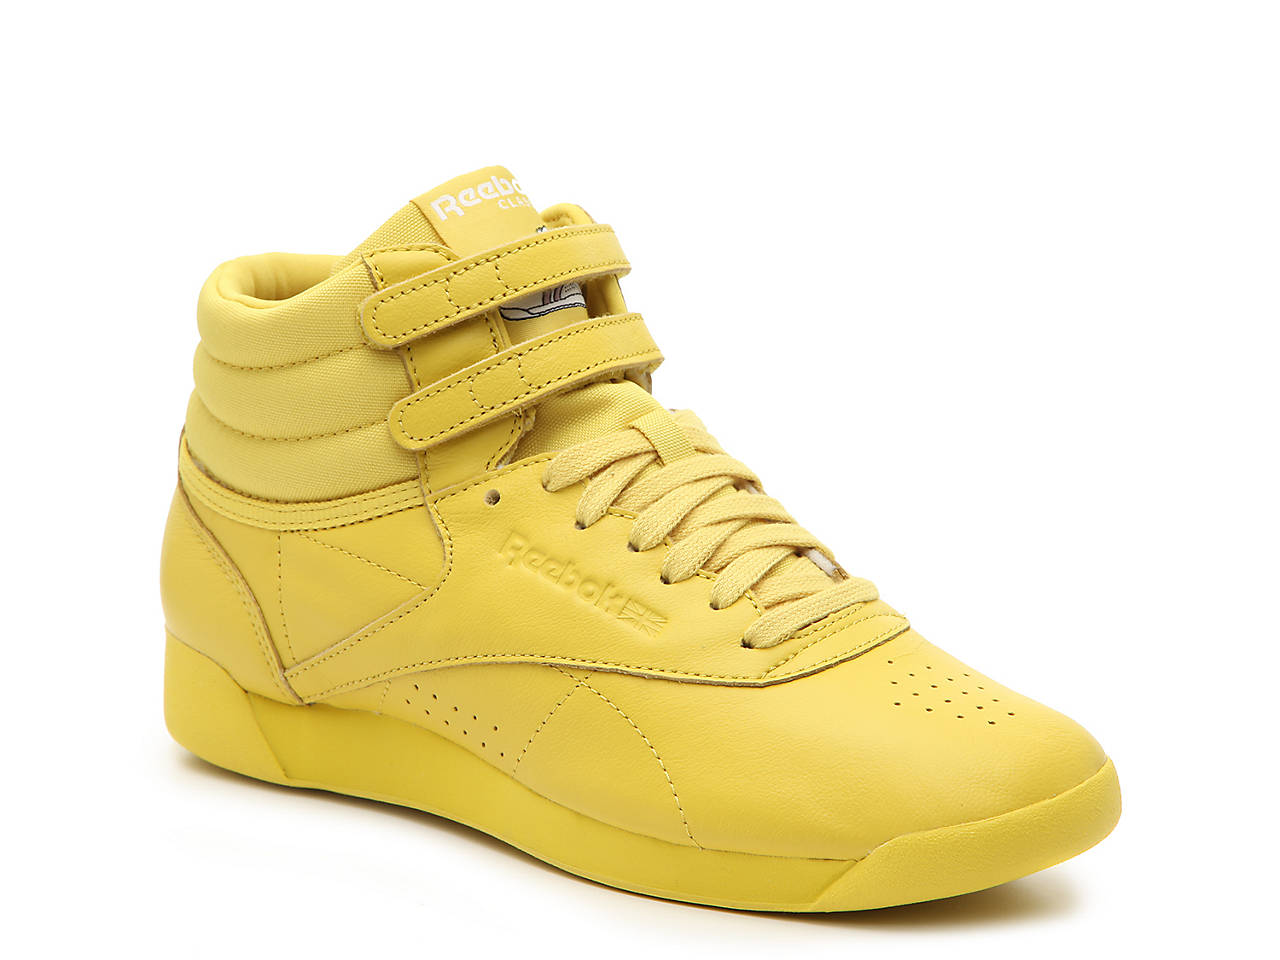 4bcce4168d9 Reebok Freestyle Hi High-Top Sneaker - Women s Women s Shoes